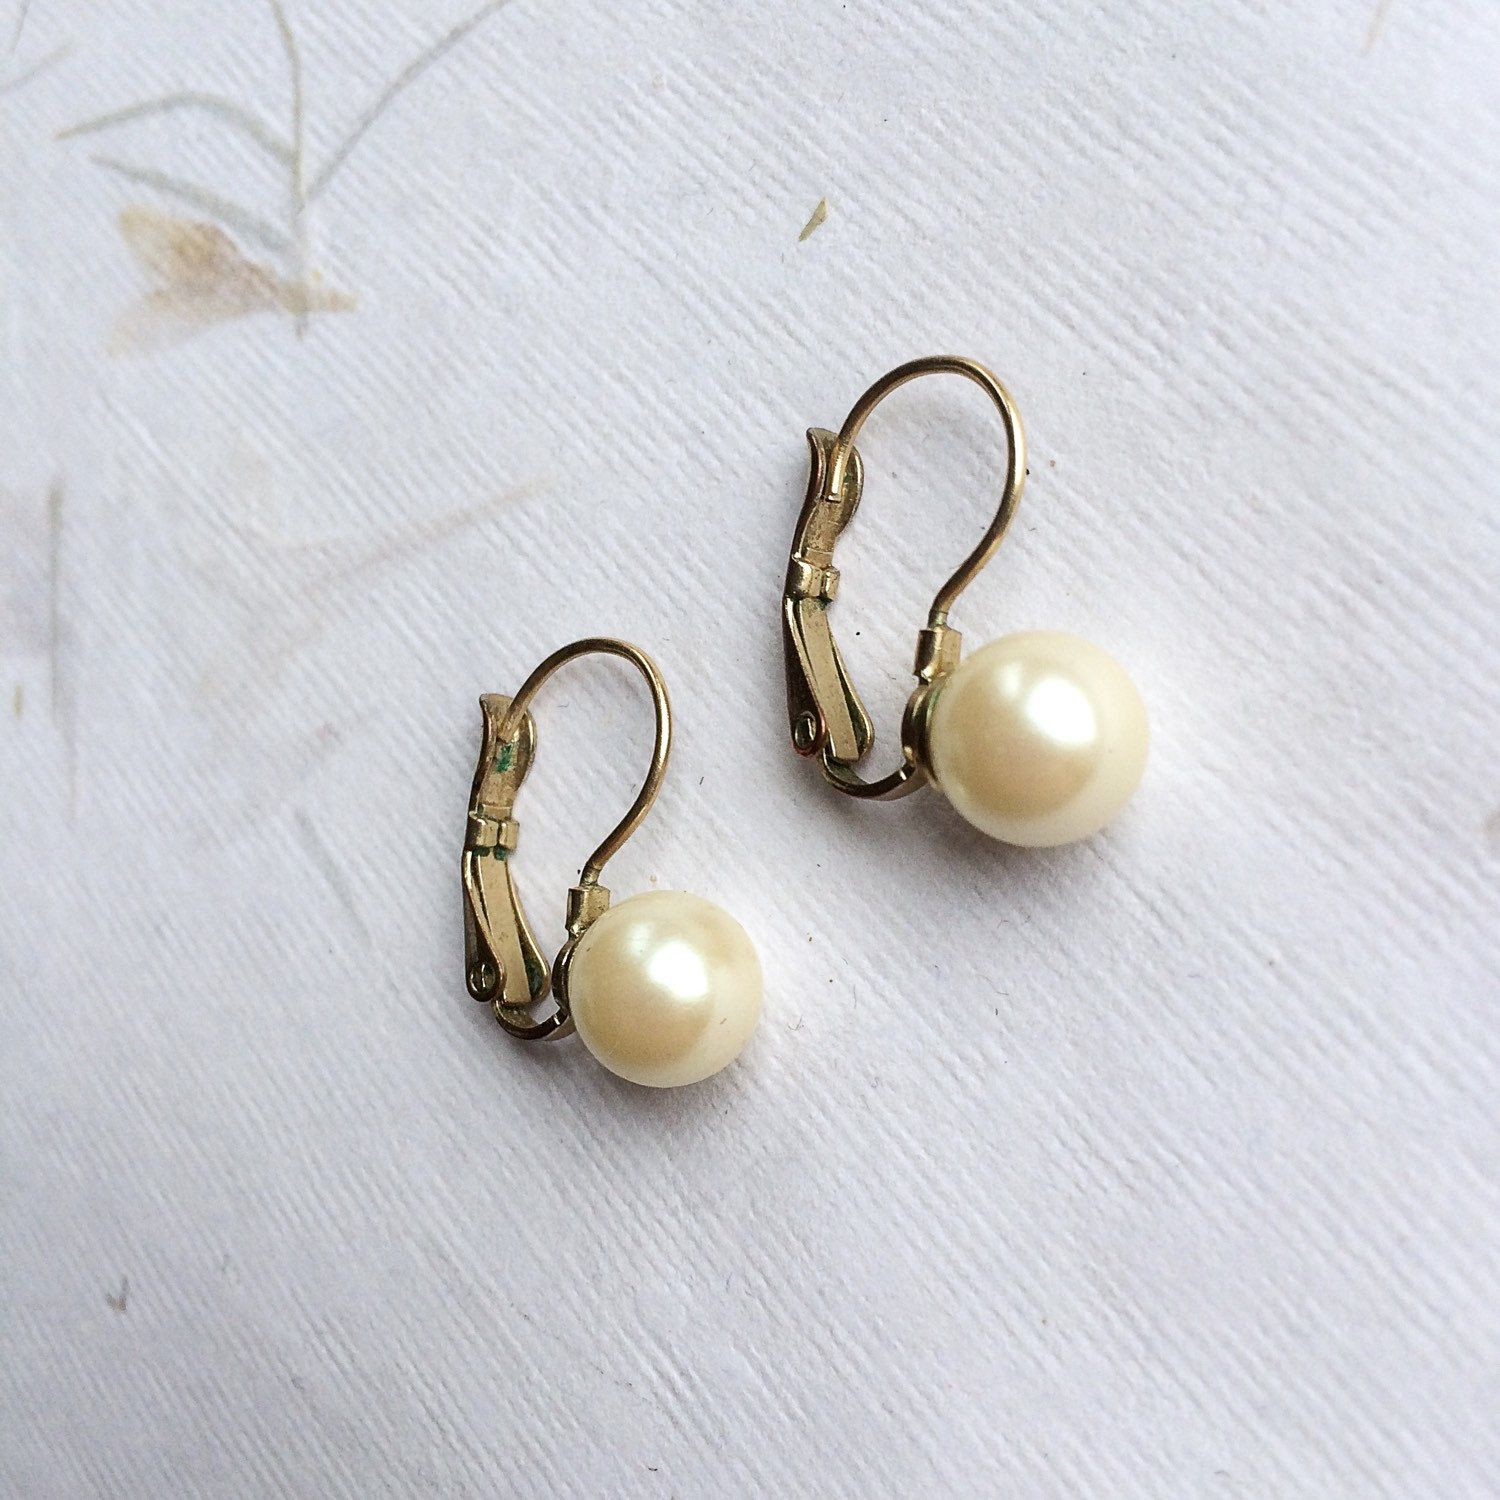 pearl silver property single of earring room with earrings l pairs one